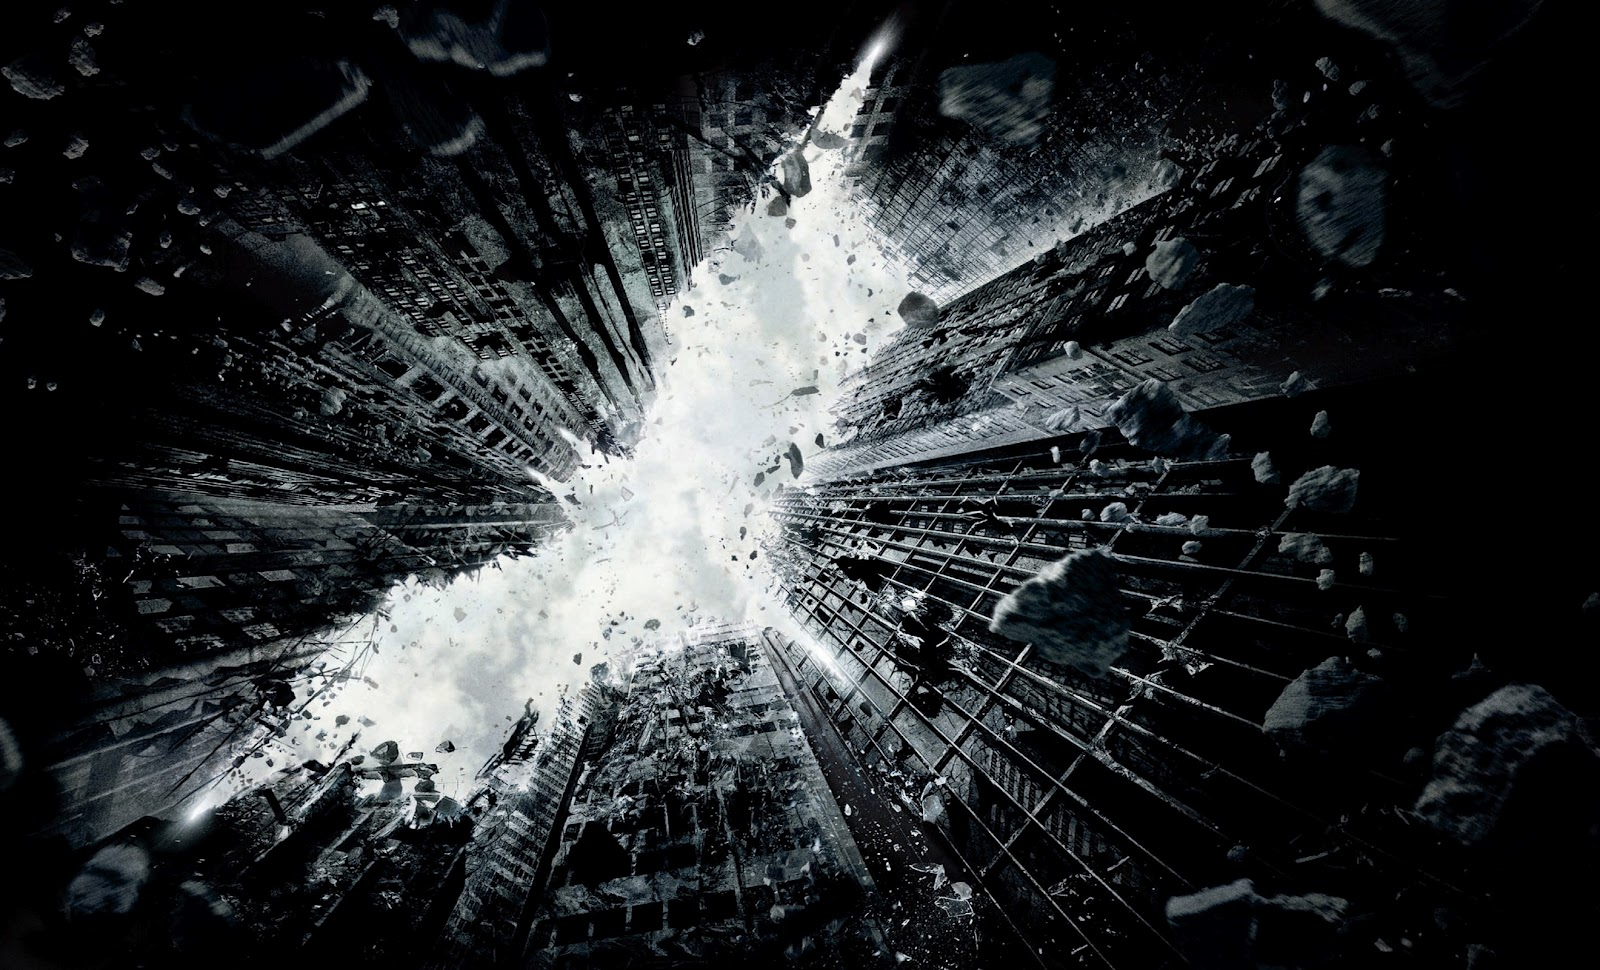 http://2.bp.blogspot.com/-qPF_6f484To/UBB2KYRYpjI/AAAAAAAABr8/LjZfWaqmUn4/s1600/The-Dark-Knight-Rises-Wallpaper-2560x1600.jpg